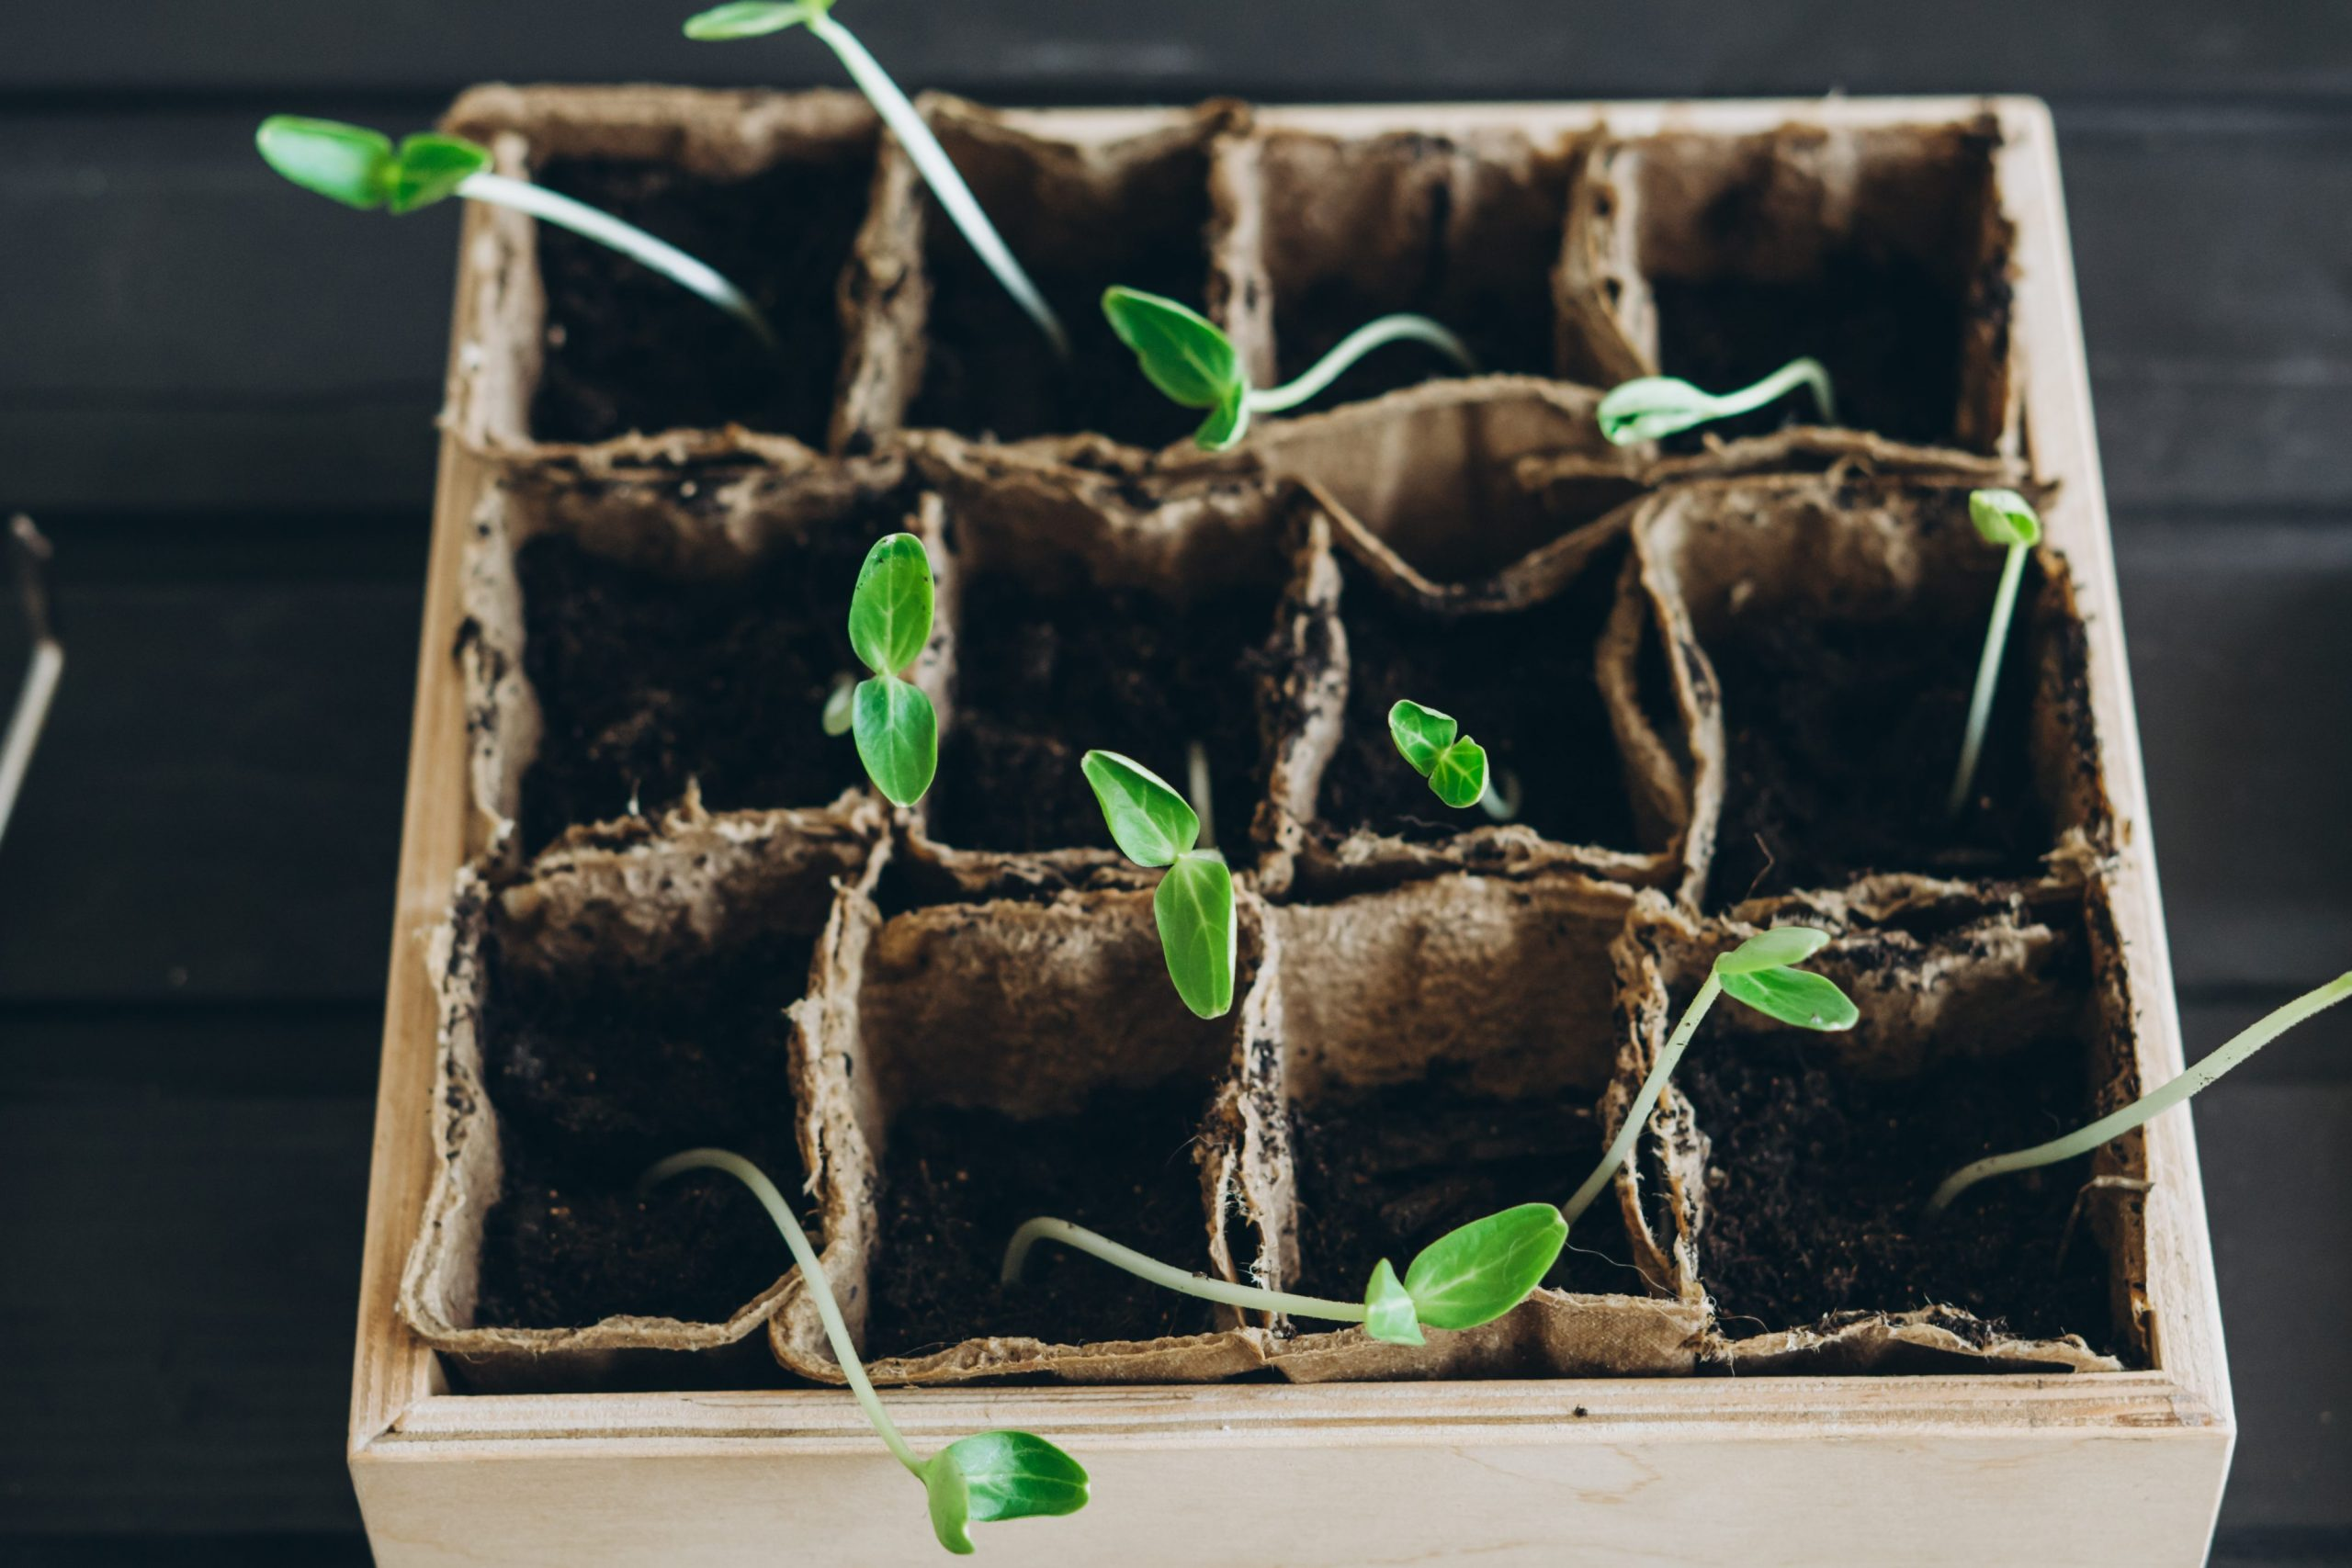 A small box of seedlings